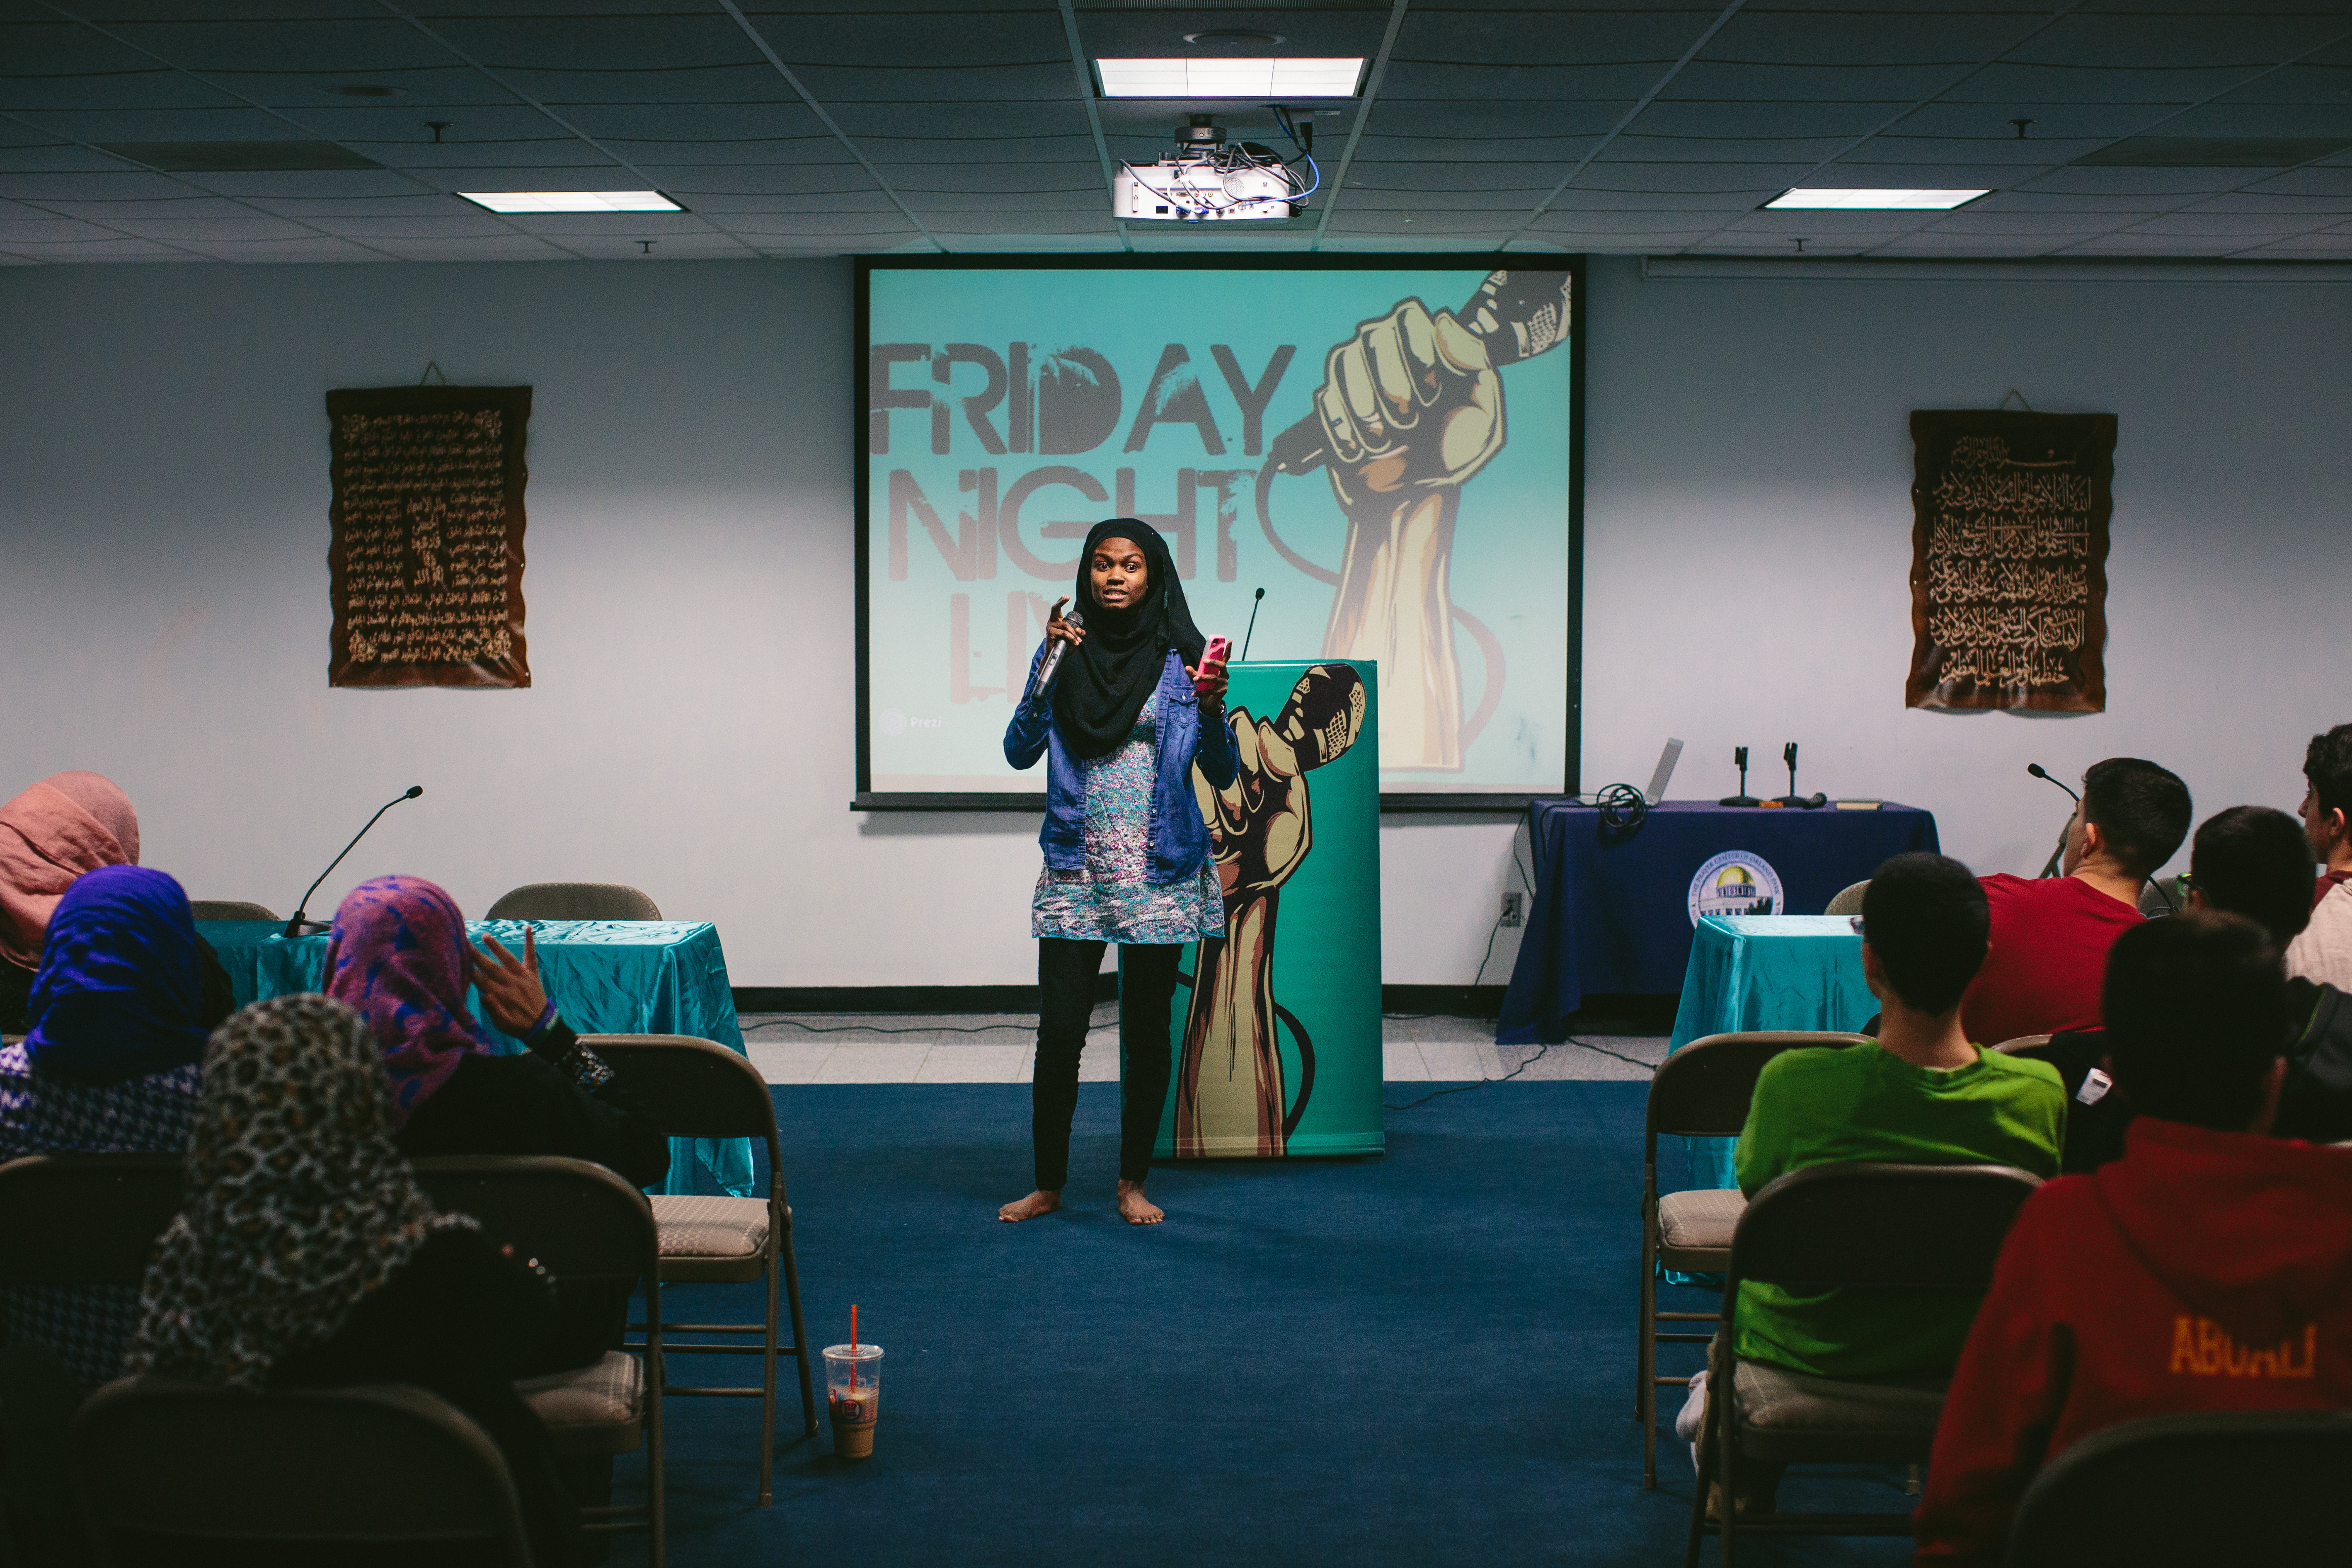 Aanisah Mubarak, 20, speaks to other Muslim youths during Friday Night Live, a youth group that gathers at The Prayer Center of Orland Park. (Alyssa Schukar/For WBEZ)